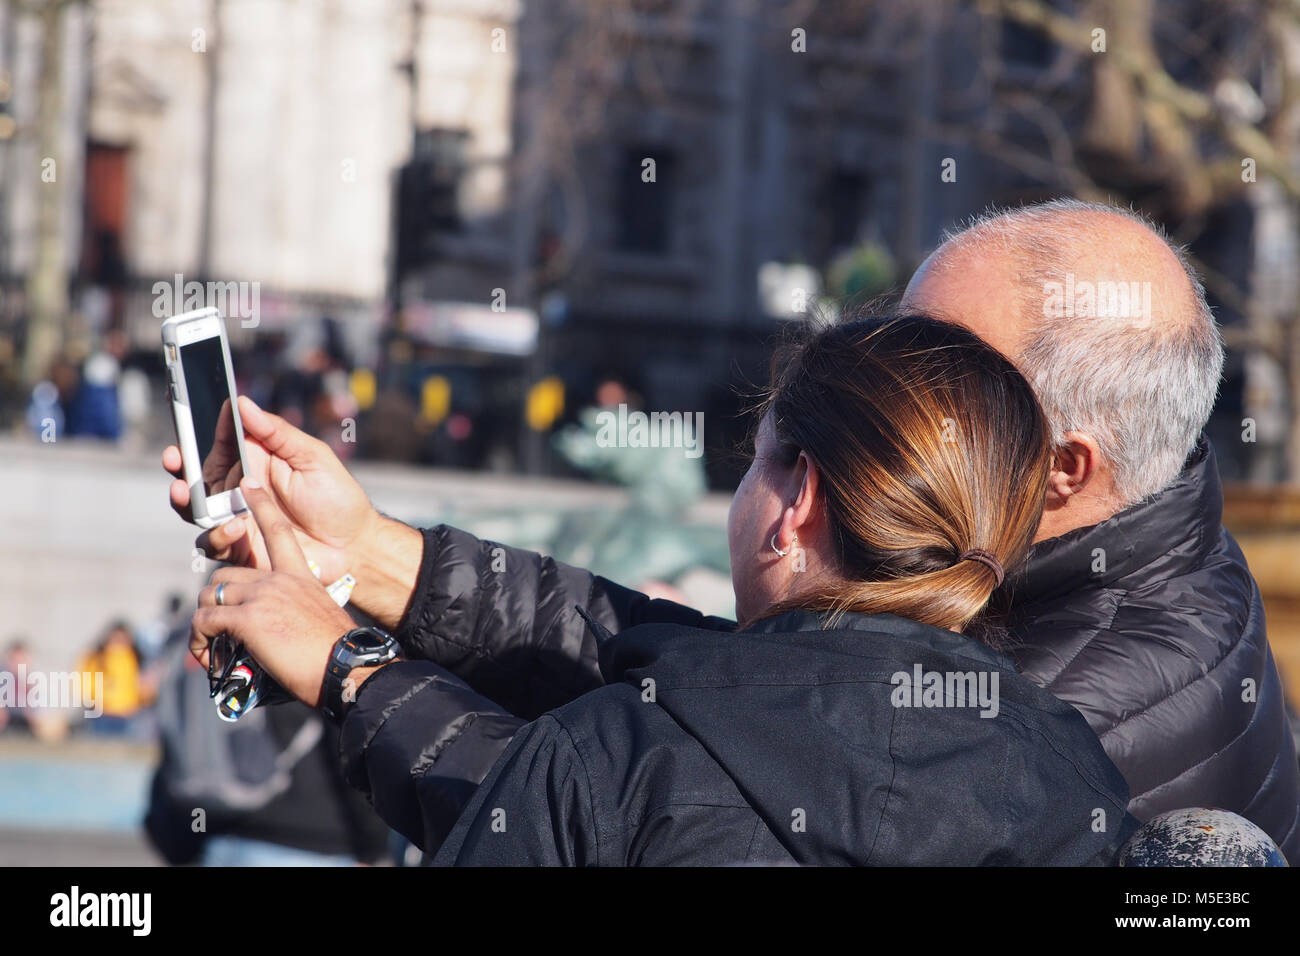 Man and woman composing a selfie on a smartphone in Trafalgar Square, London - Stock Image